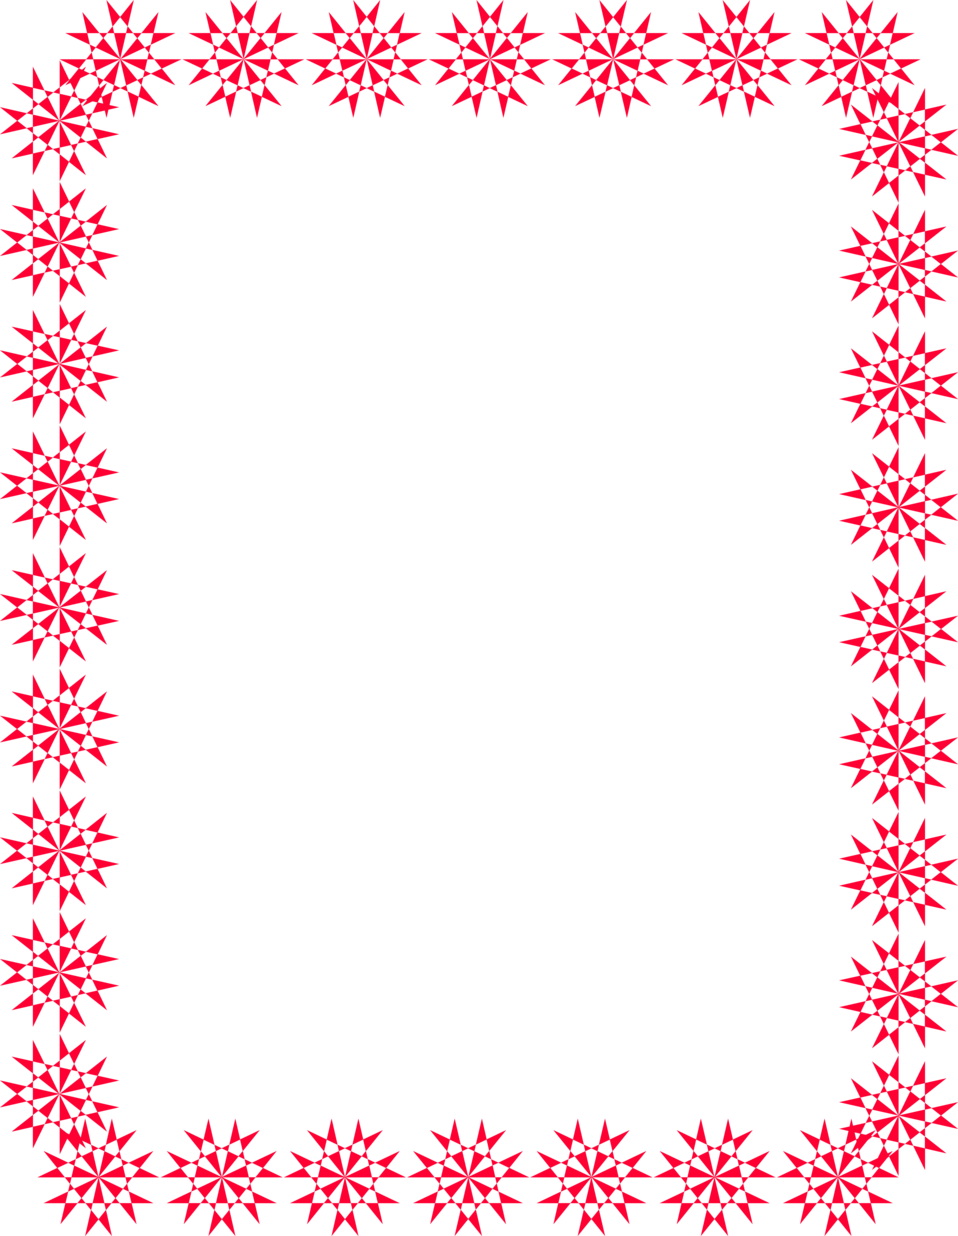 Border free stock photo. Frame clipart red